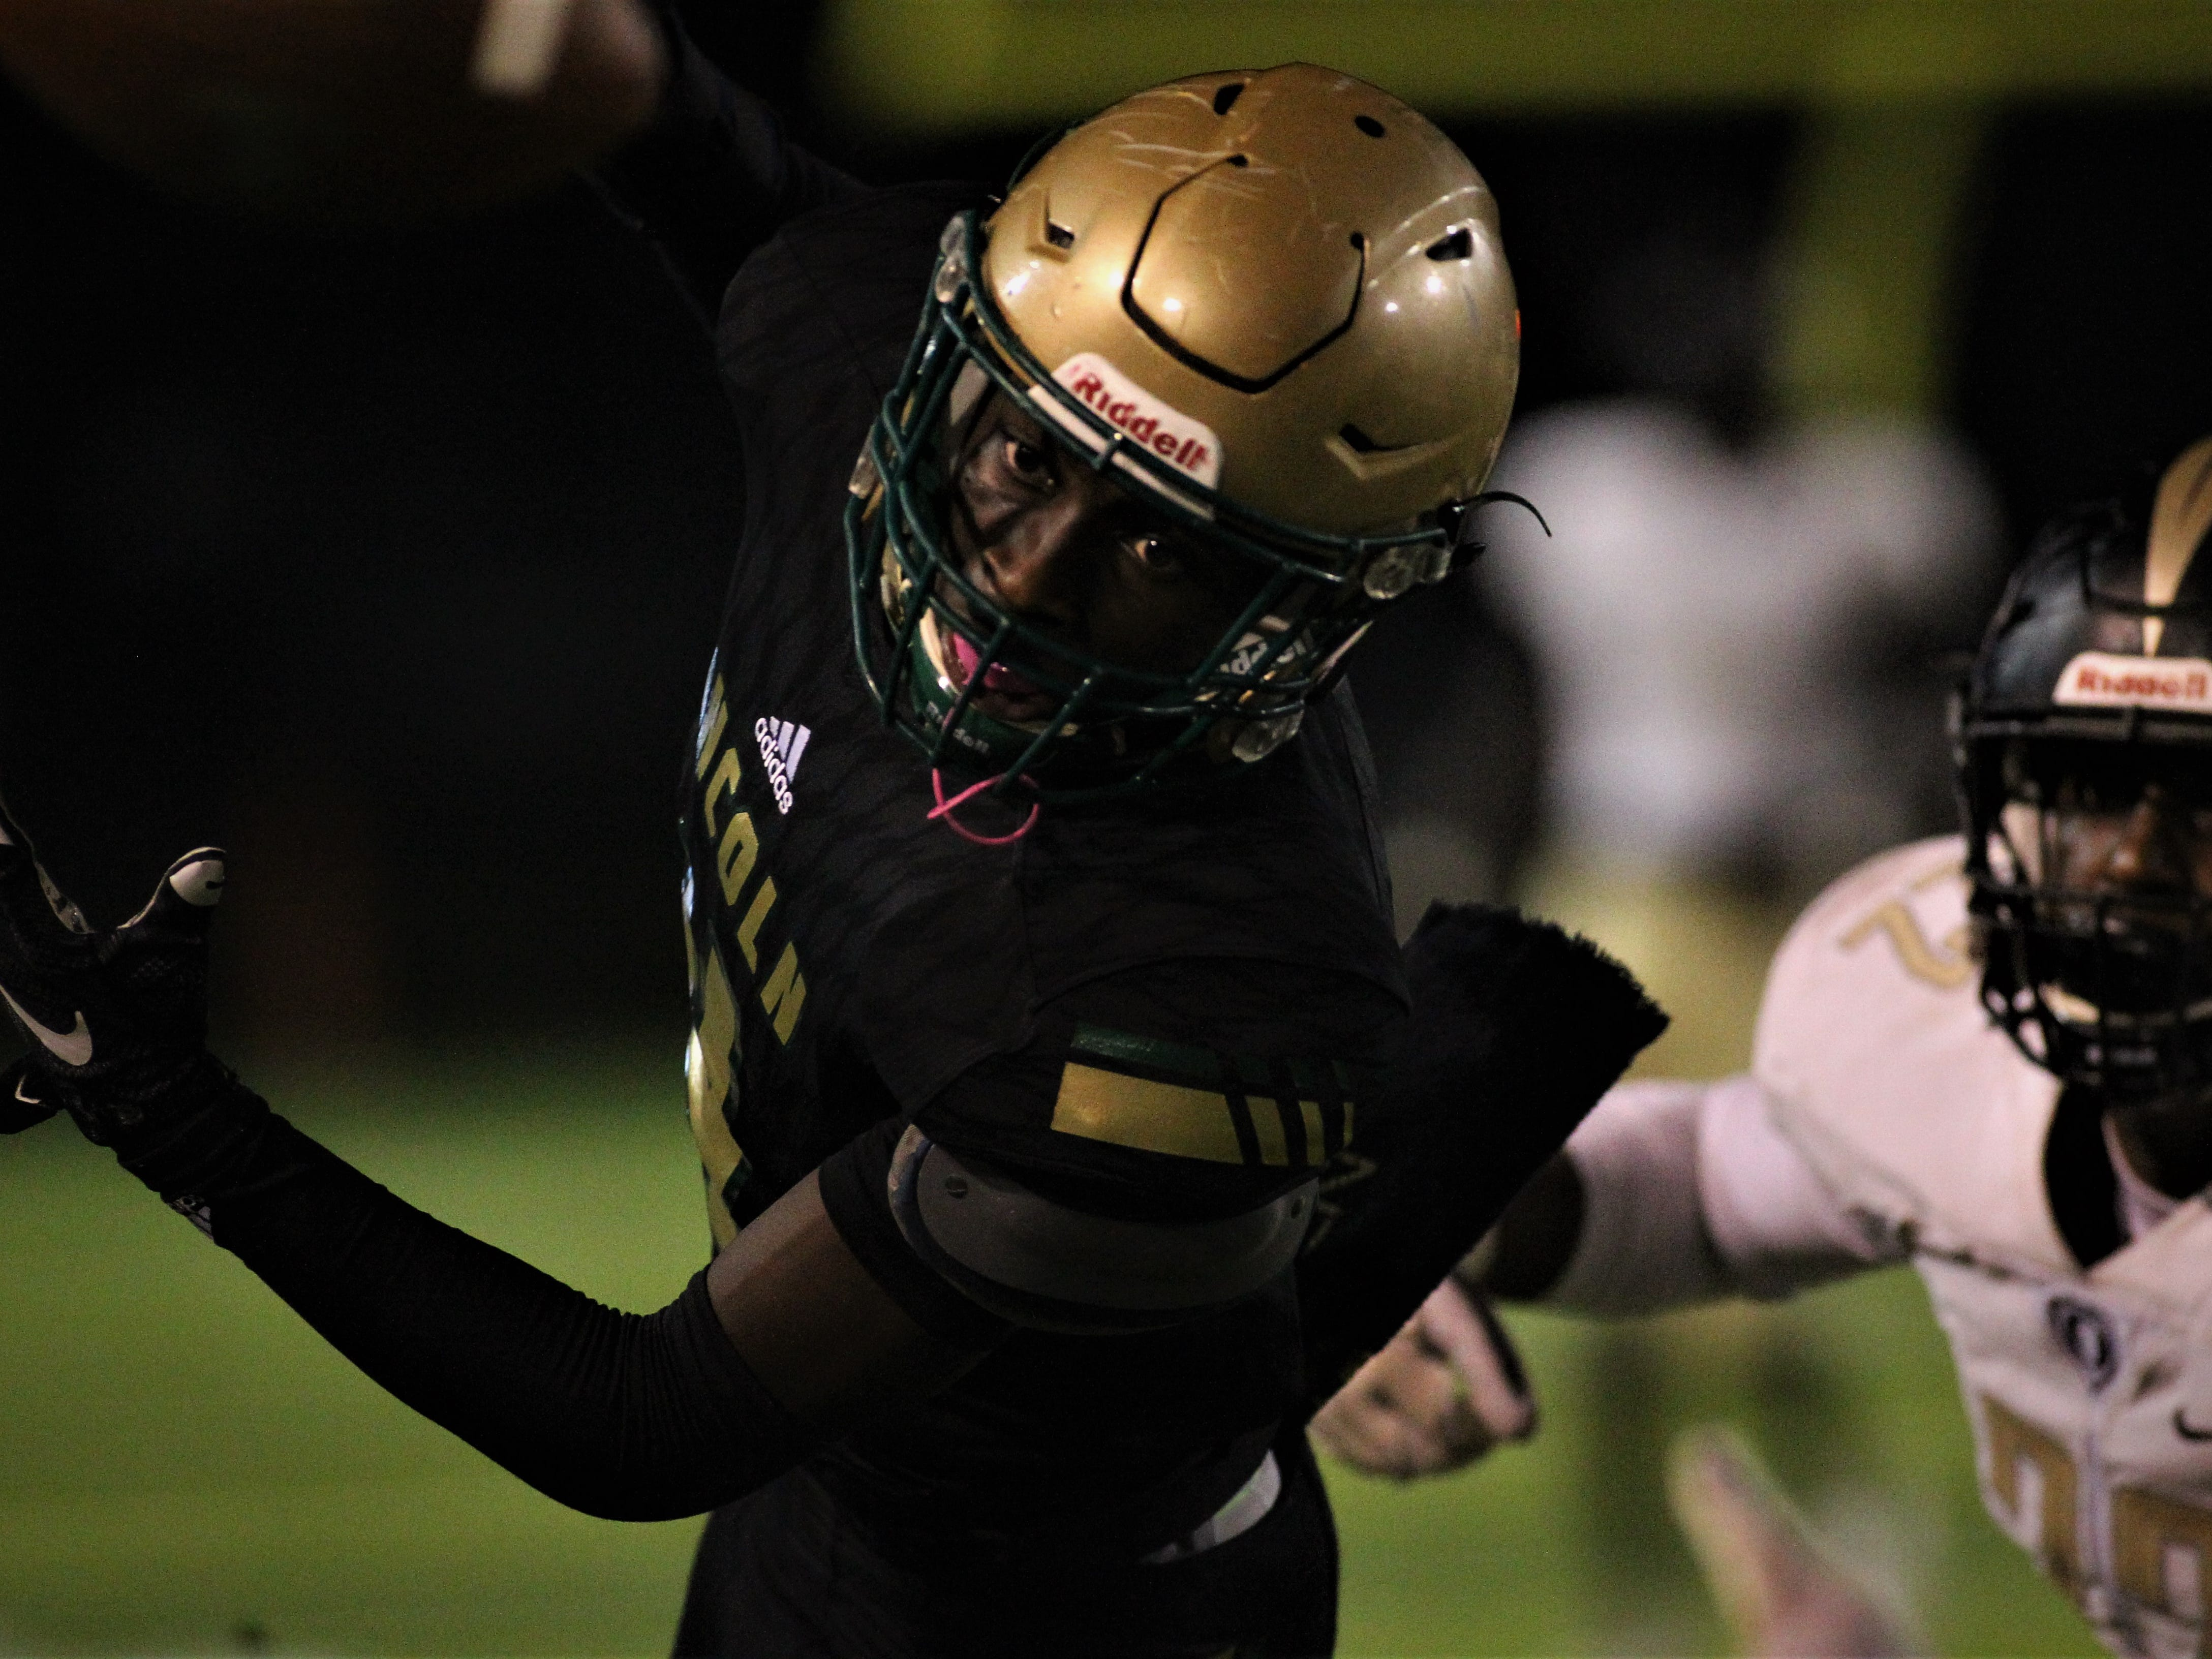 Lincoln quarterback Chris Beard stretches for the goal line as Lincoln beat Oakleaf 38-31 in three overtime periods during a Region 1-7A quarterfinal Thursday night at Gene Cox Stadium.